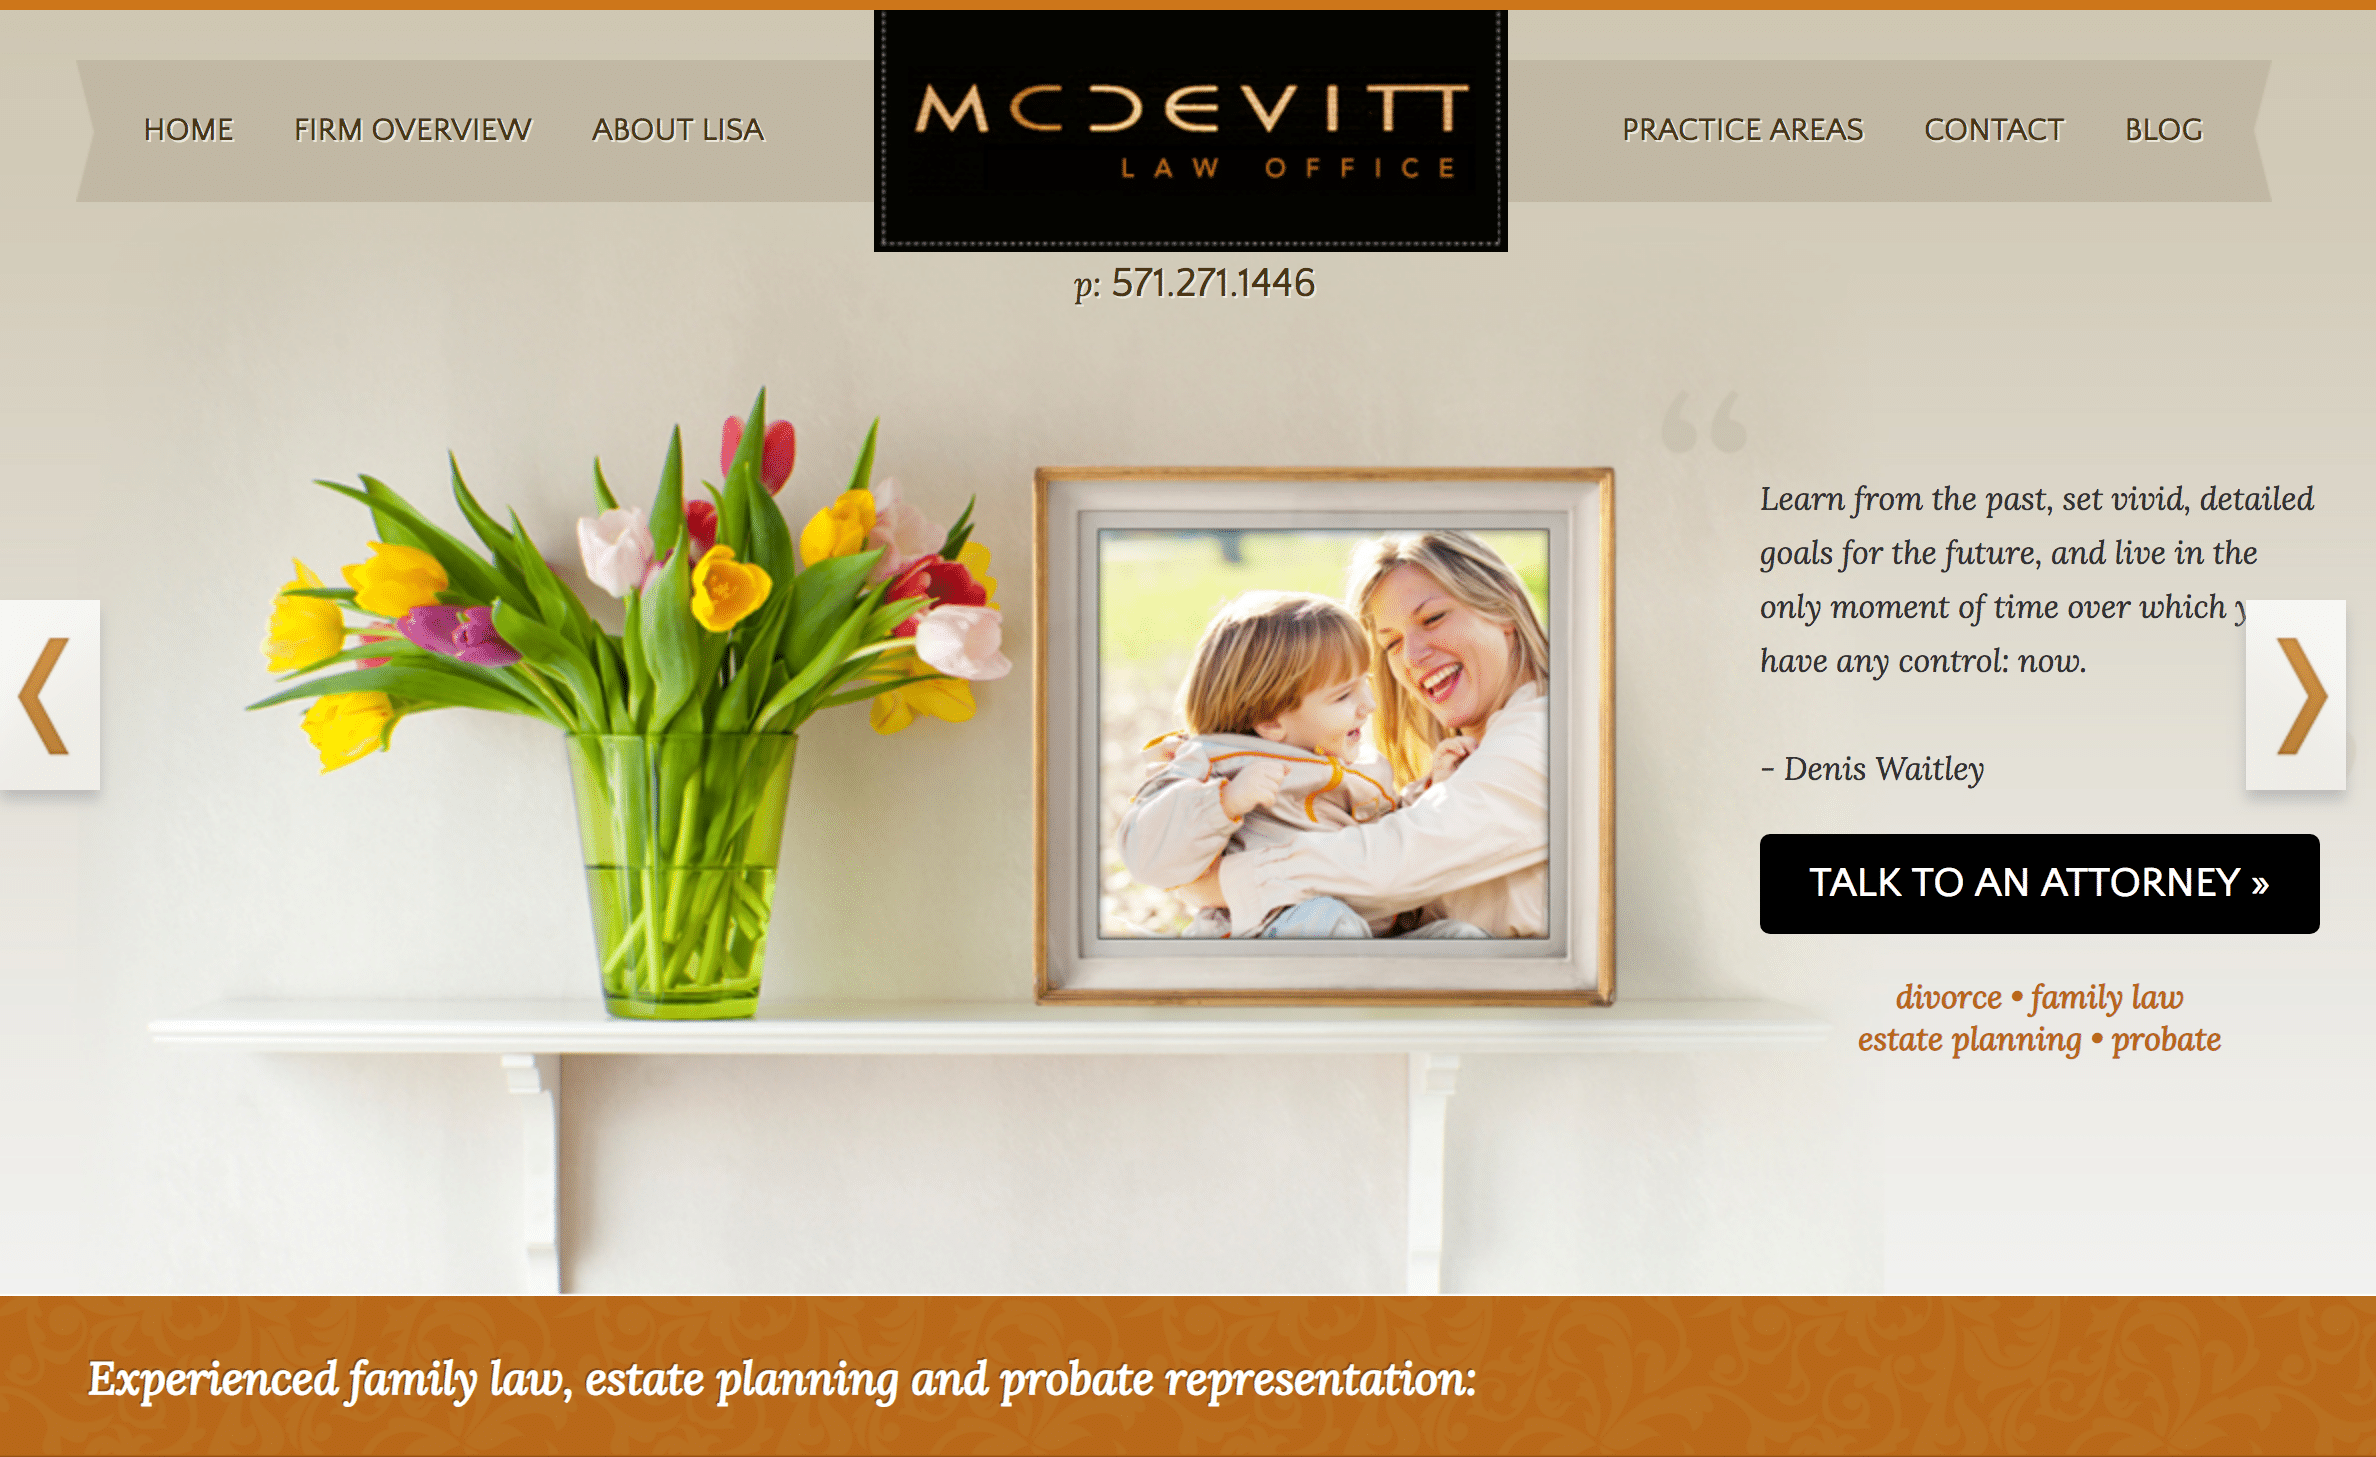 McDevitt Law Office